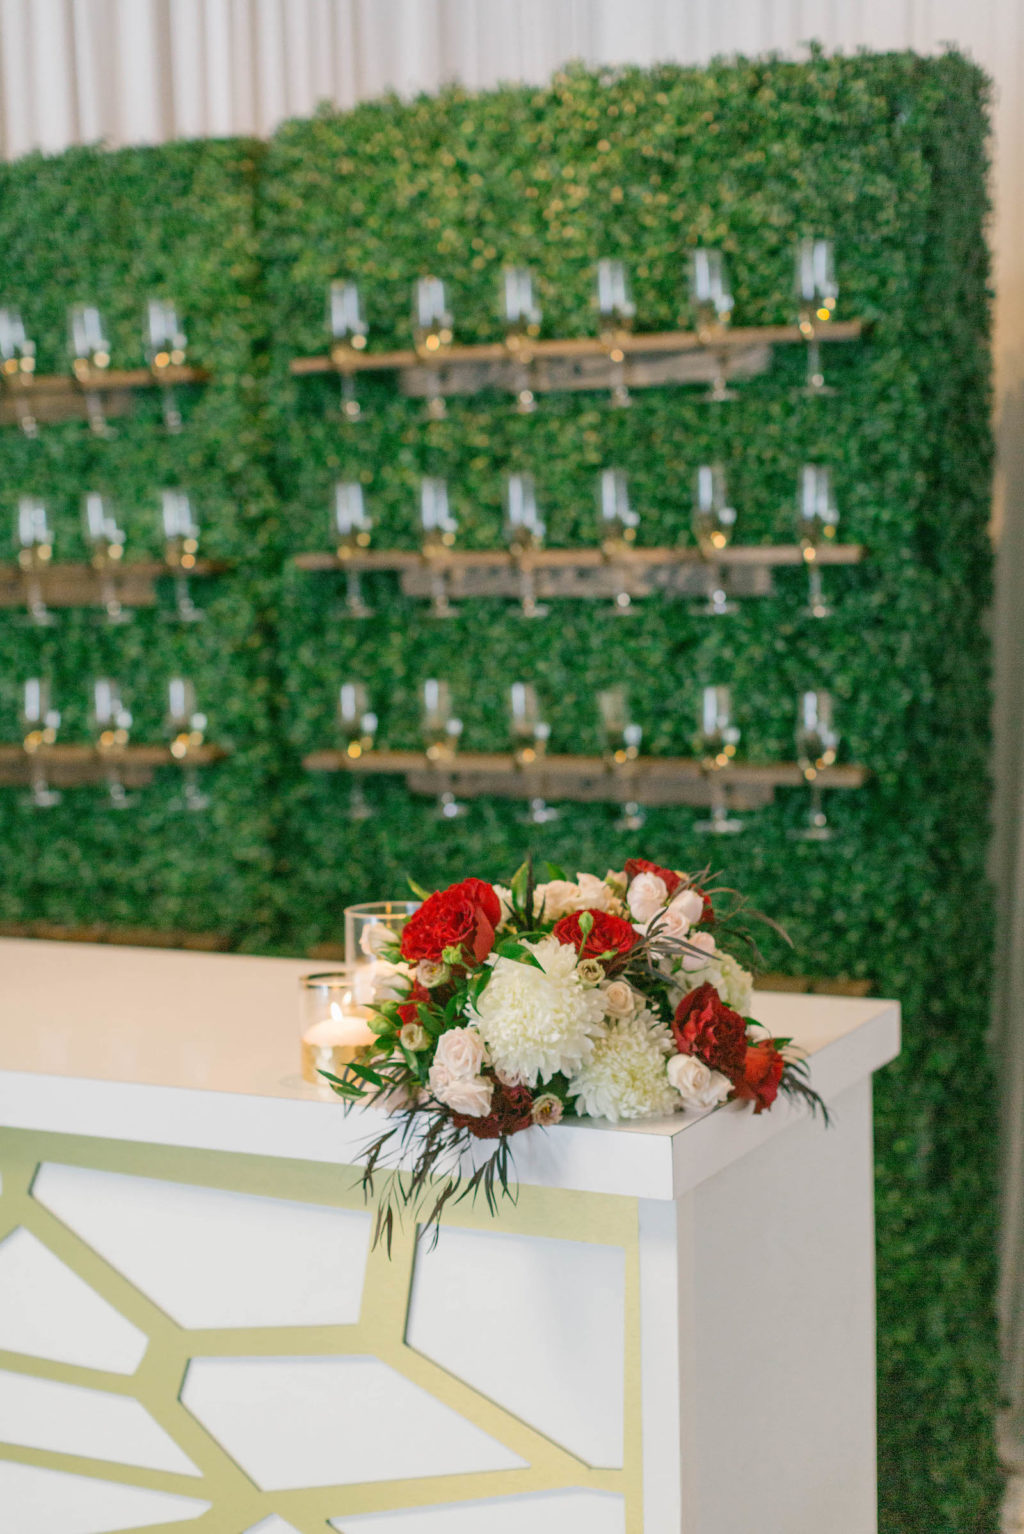 Champagne Glass Hedge Grass Wall with Gold Bar | Styled with Love Influencer Wedding | St. Pete Beach Wedding Venue Bellwether Beach Resort